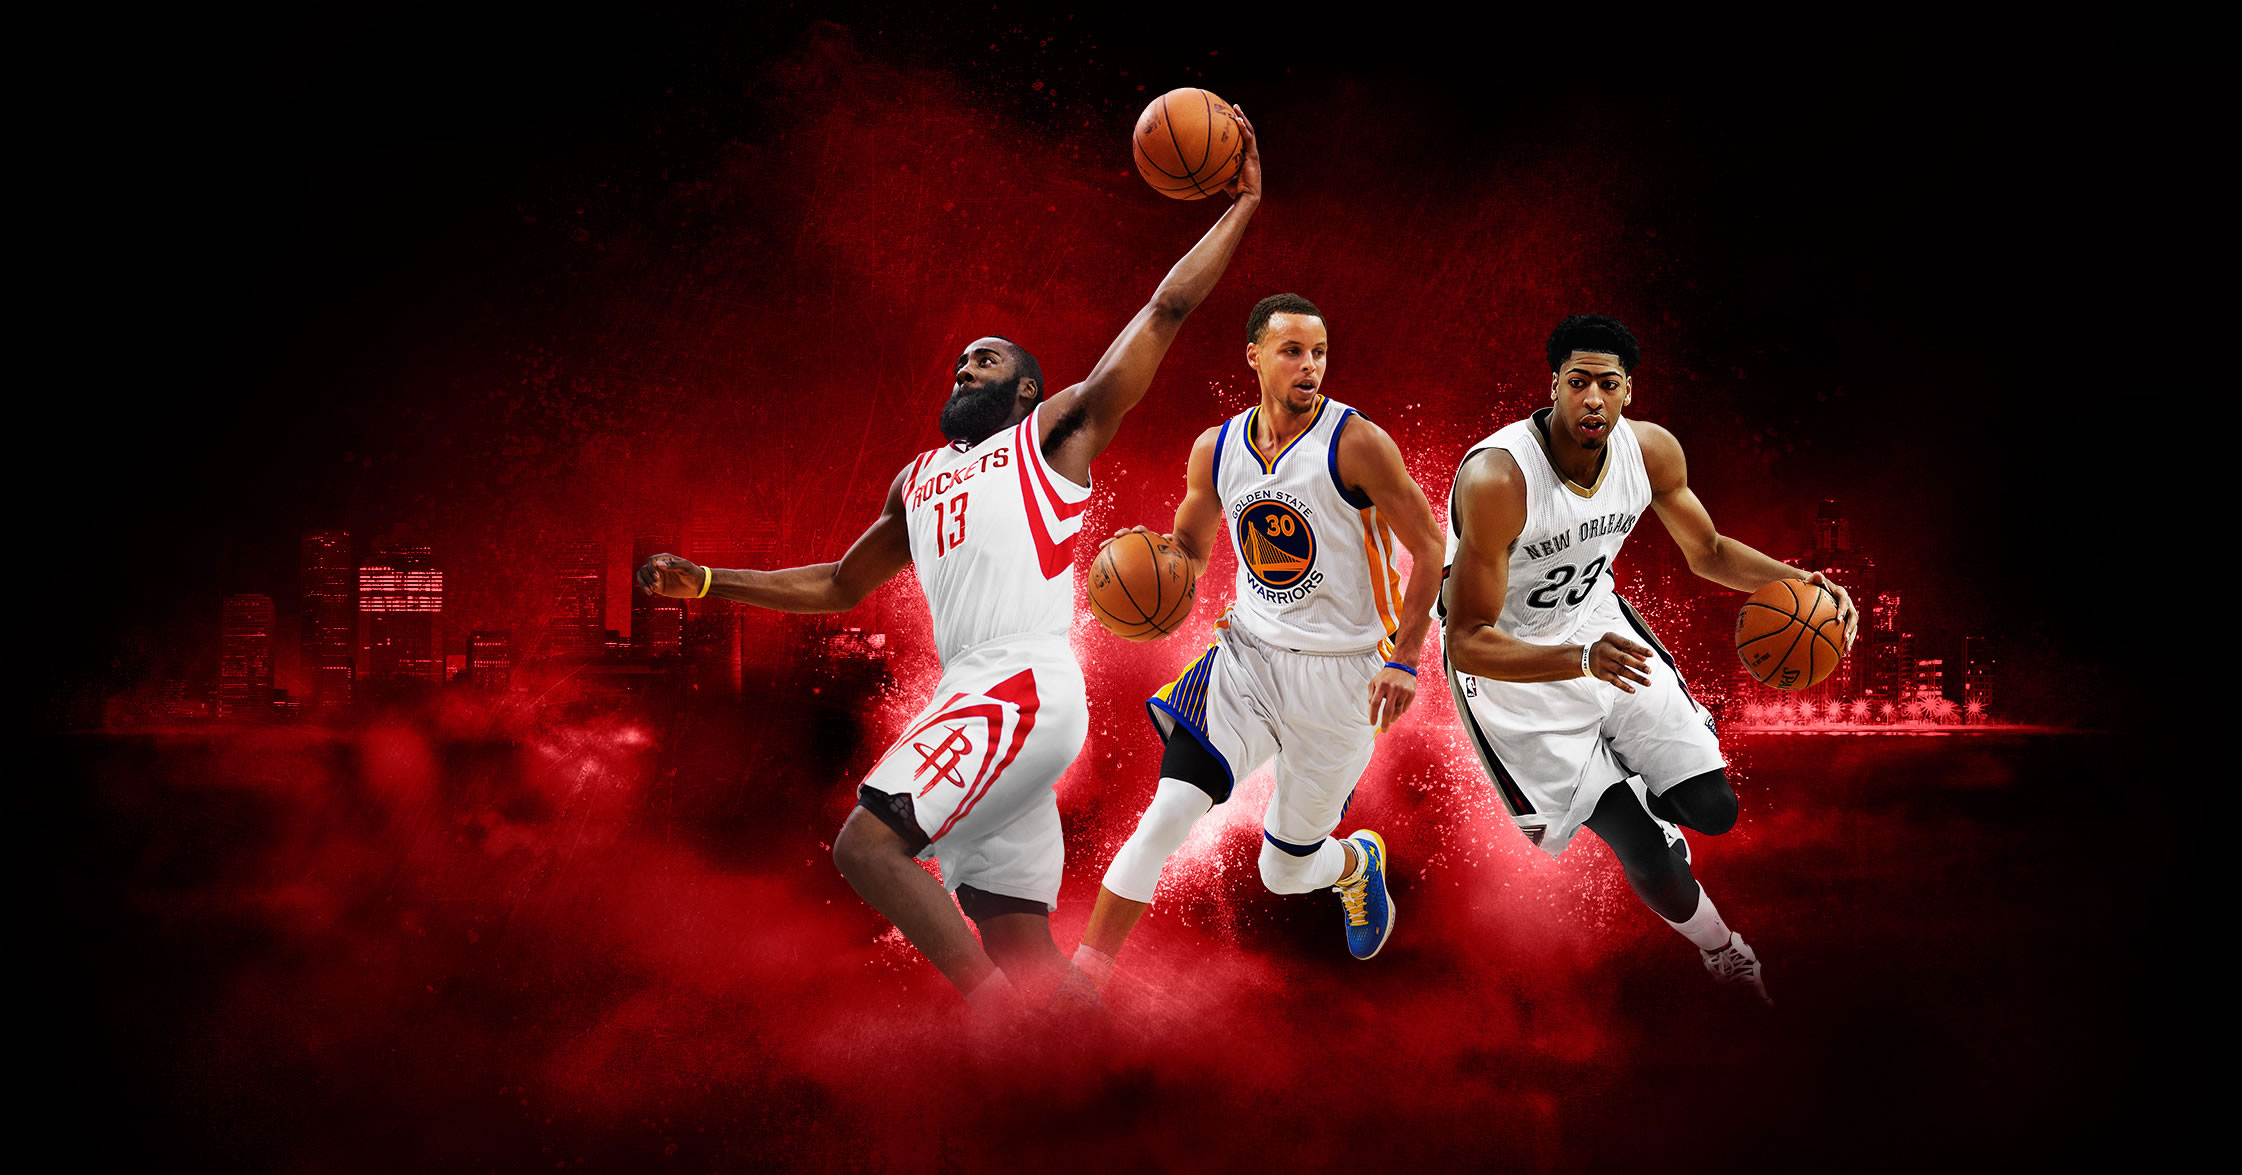 You will win. - The new generation of fantasy basketball is here